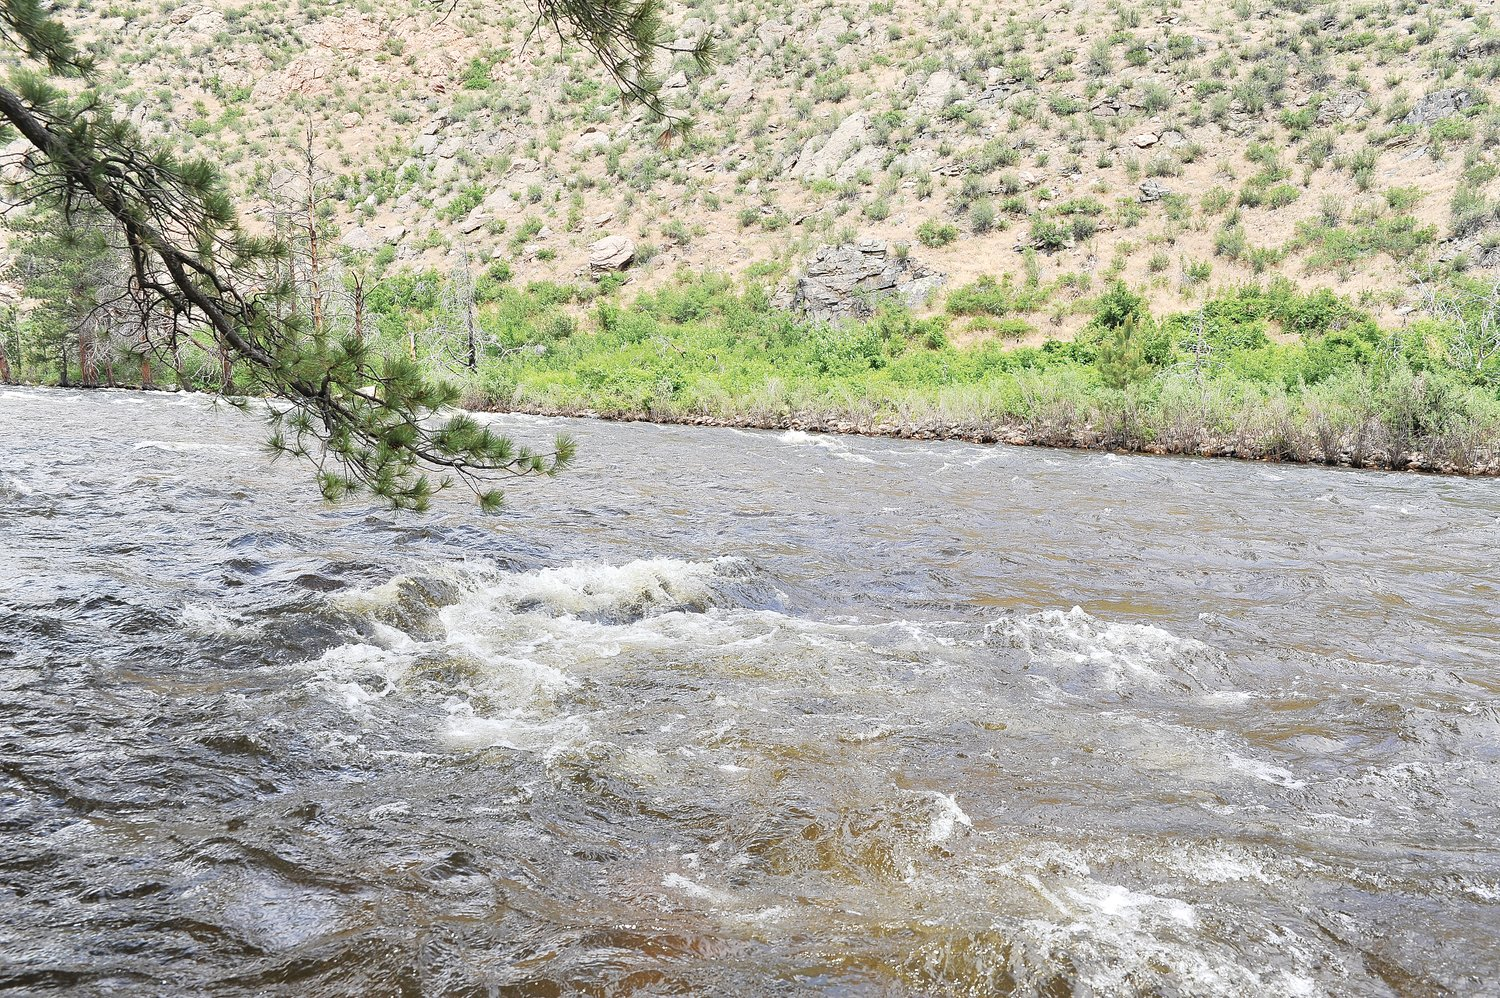 The city of Thornton is trying to deliver water from rights in the Larimer County's Cache la Poudre River by constructing a water pipeline from Larimer County through Weld County to Thornton. The city faced another major setback when the Weld County Board of Commissioners denied the city's application to build a segment of the pipeline in Weld. Thornton recently filed a civil complaint in response.